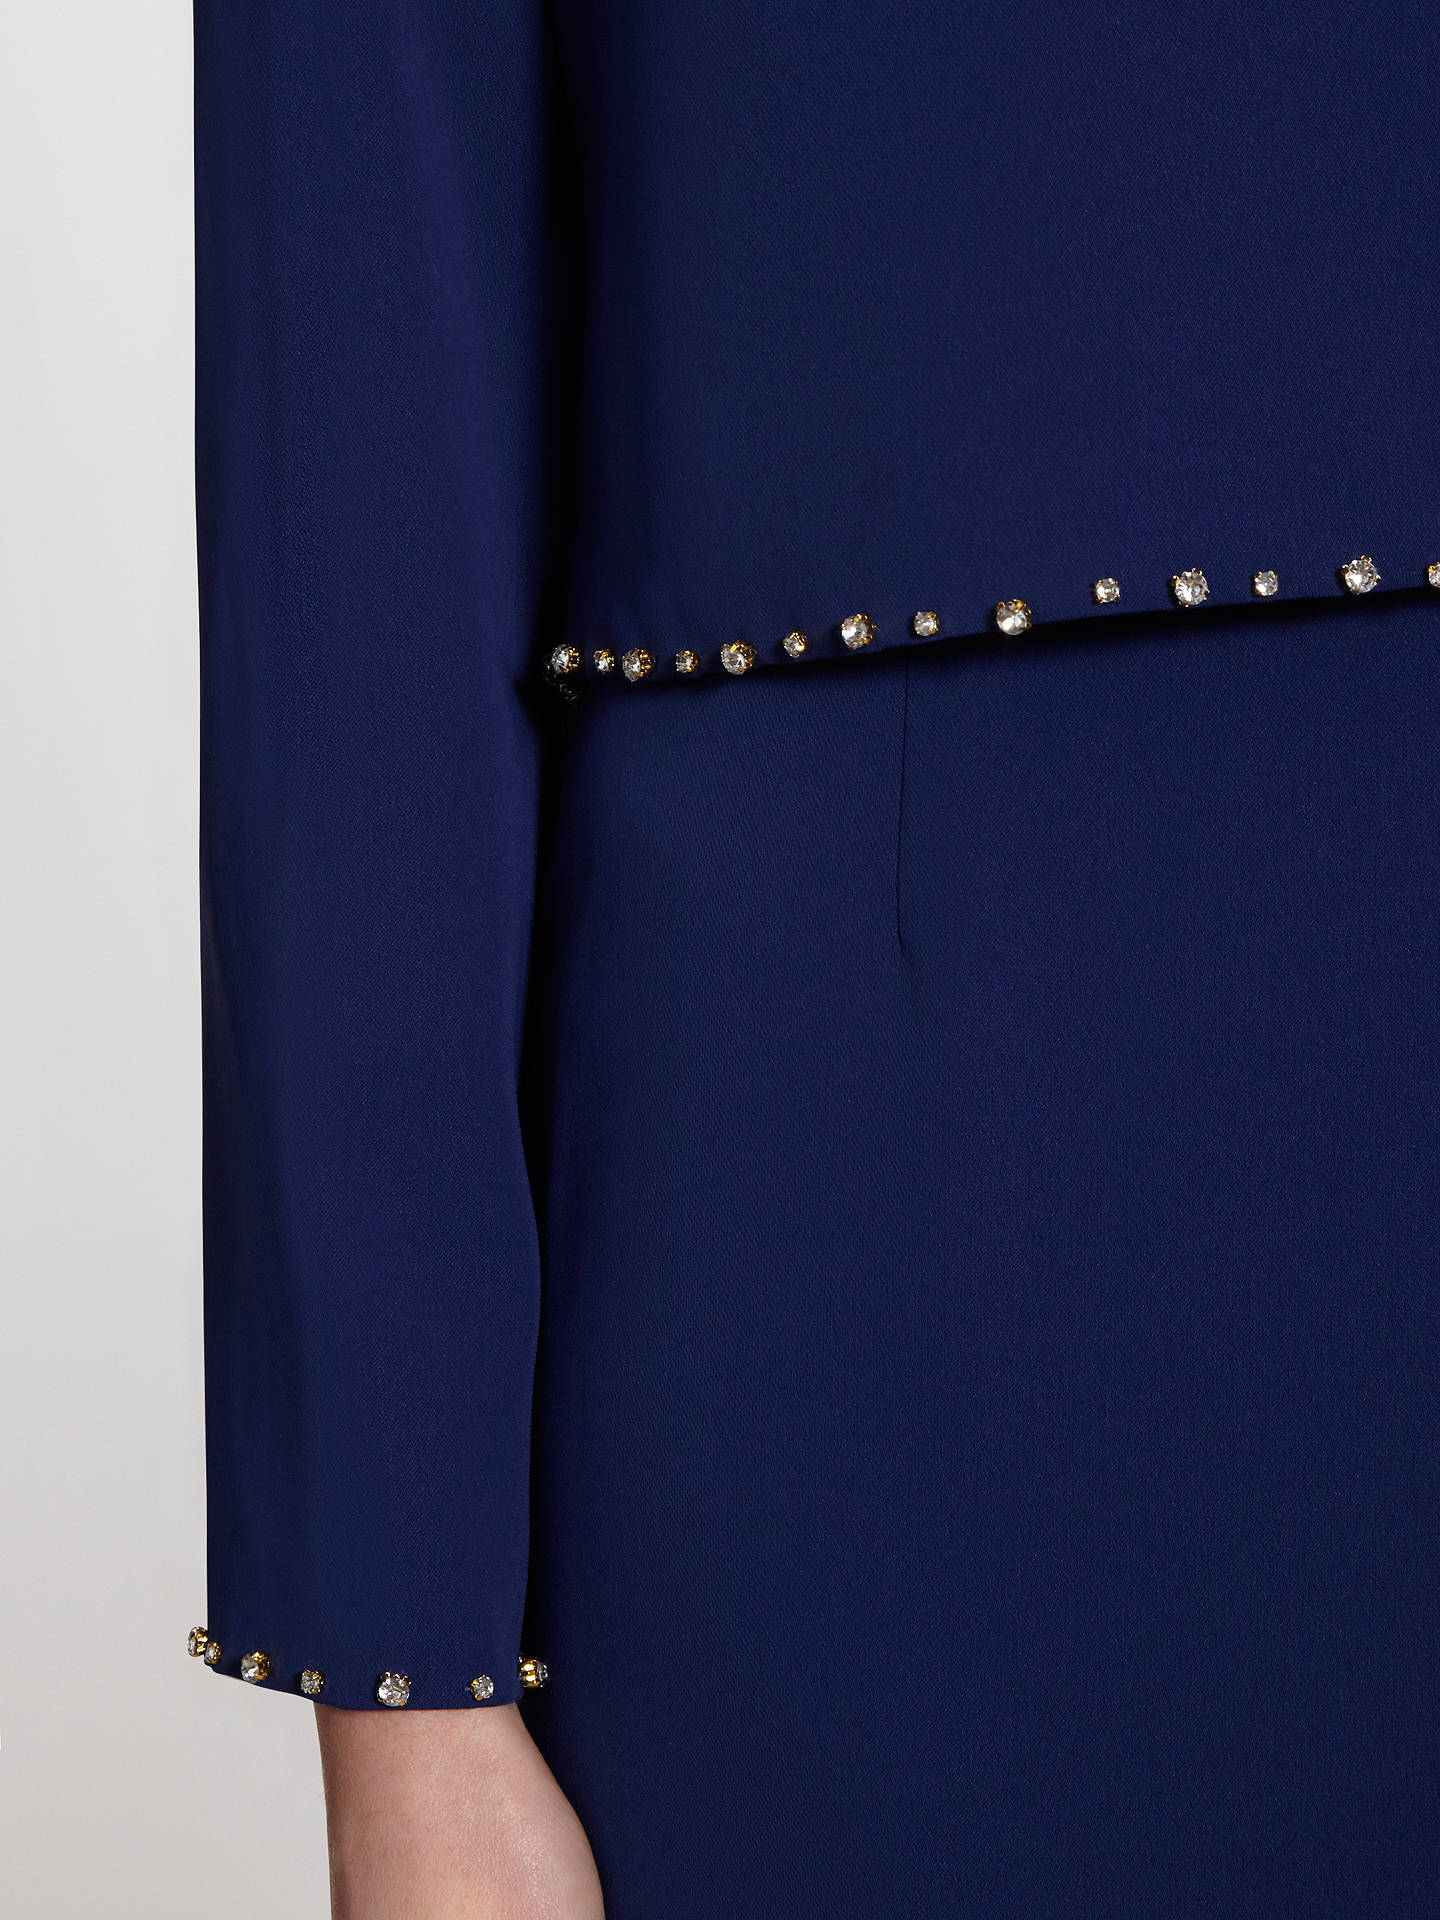 BuyGina Bacconi Crepe Dress With Beaded Overtop, Navy, 8 Online at johnlewis.com